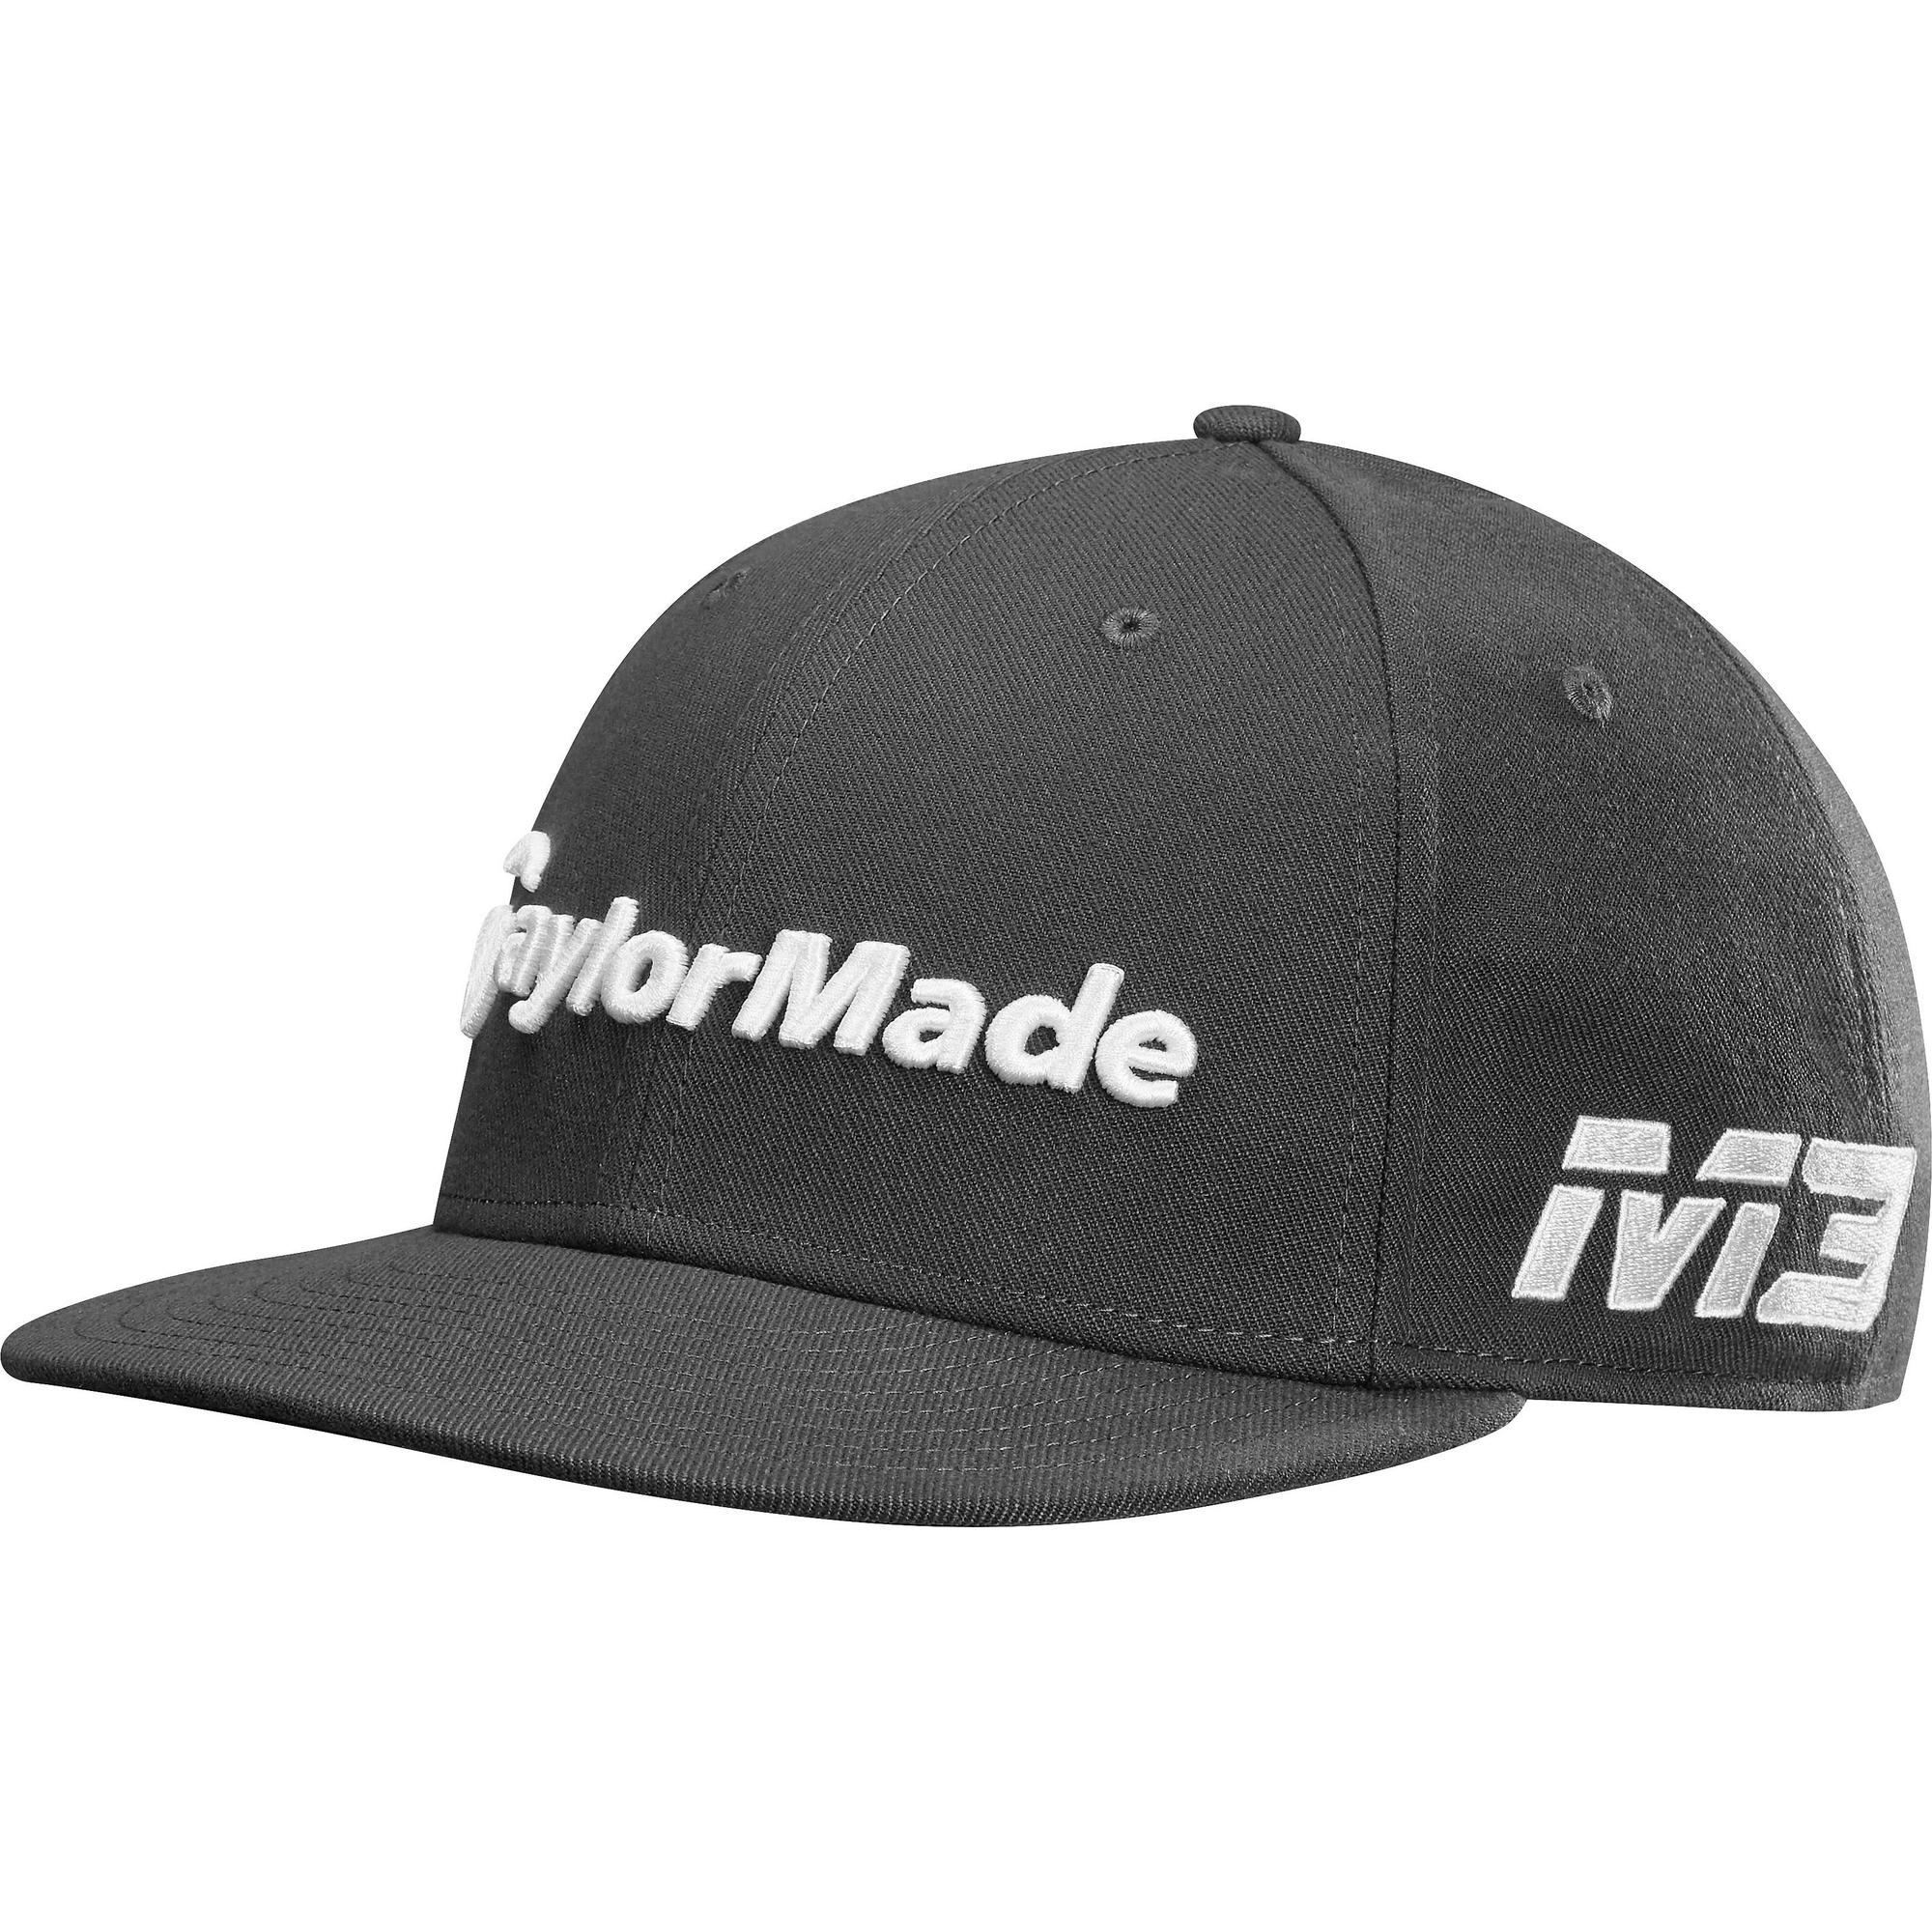 Mens New Era Tour 9Fifty Cap